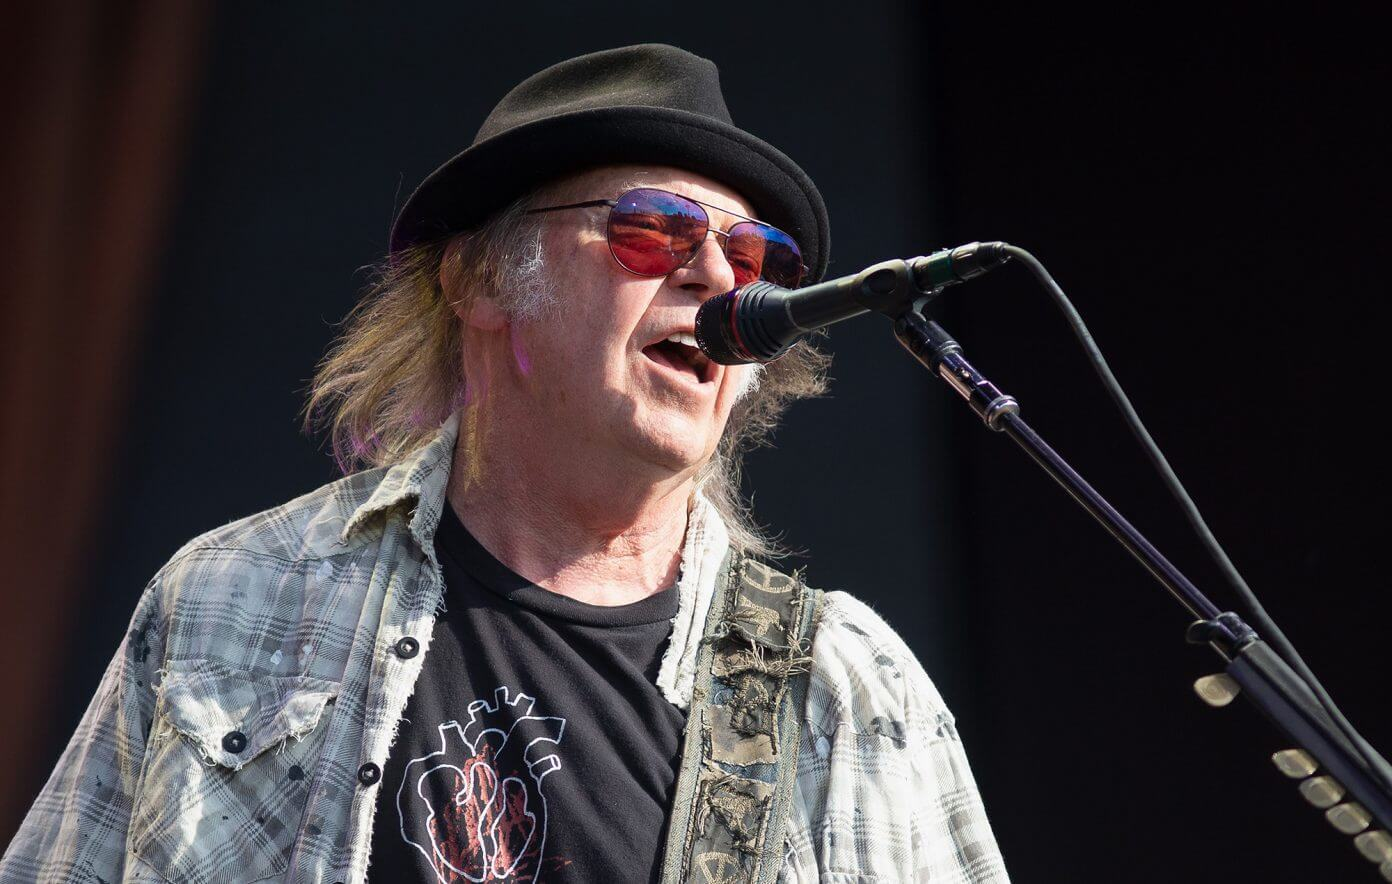 Neil Young & Crazy Horse announce new album Barn coming in December